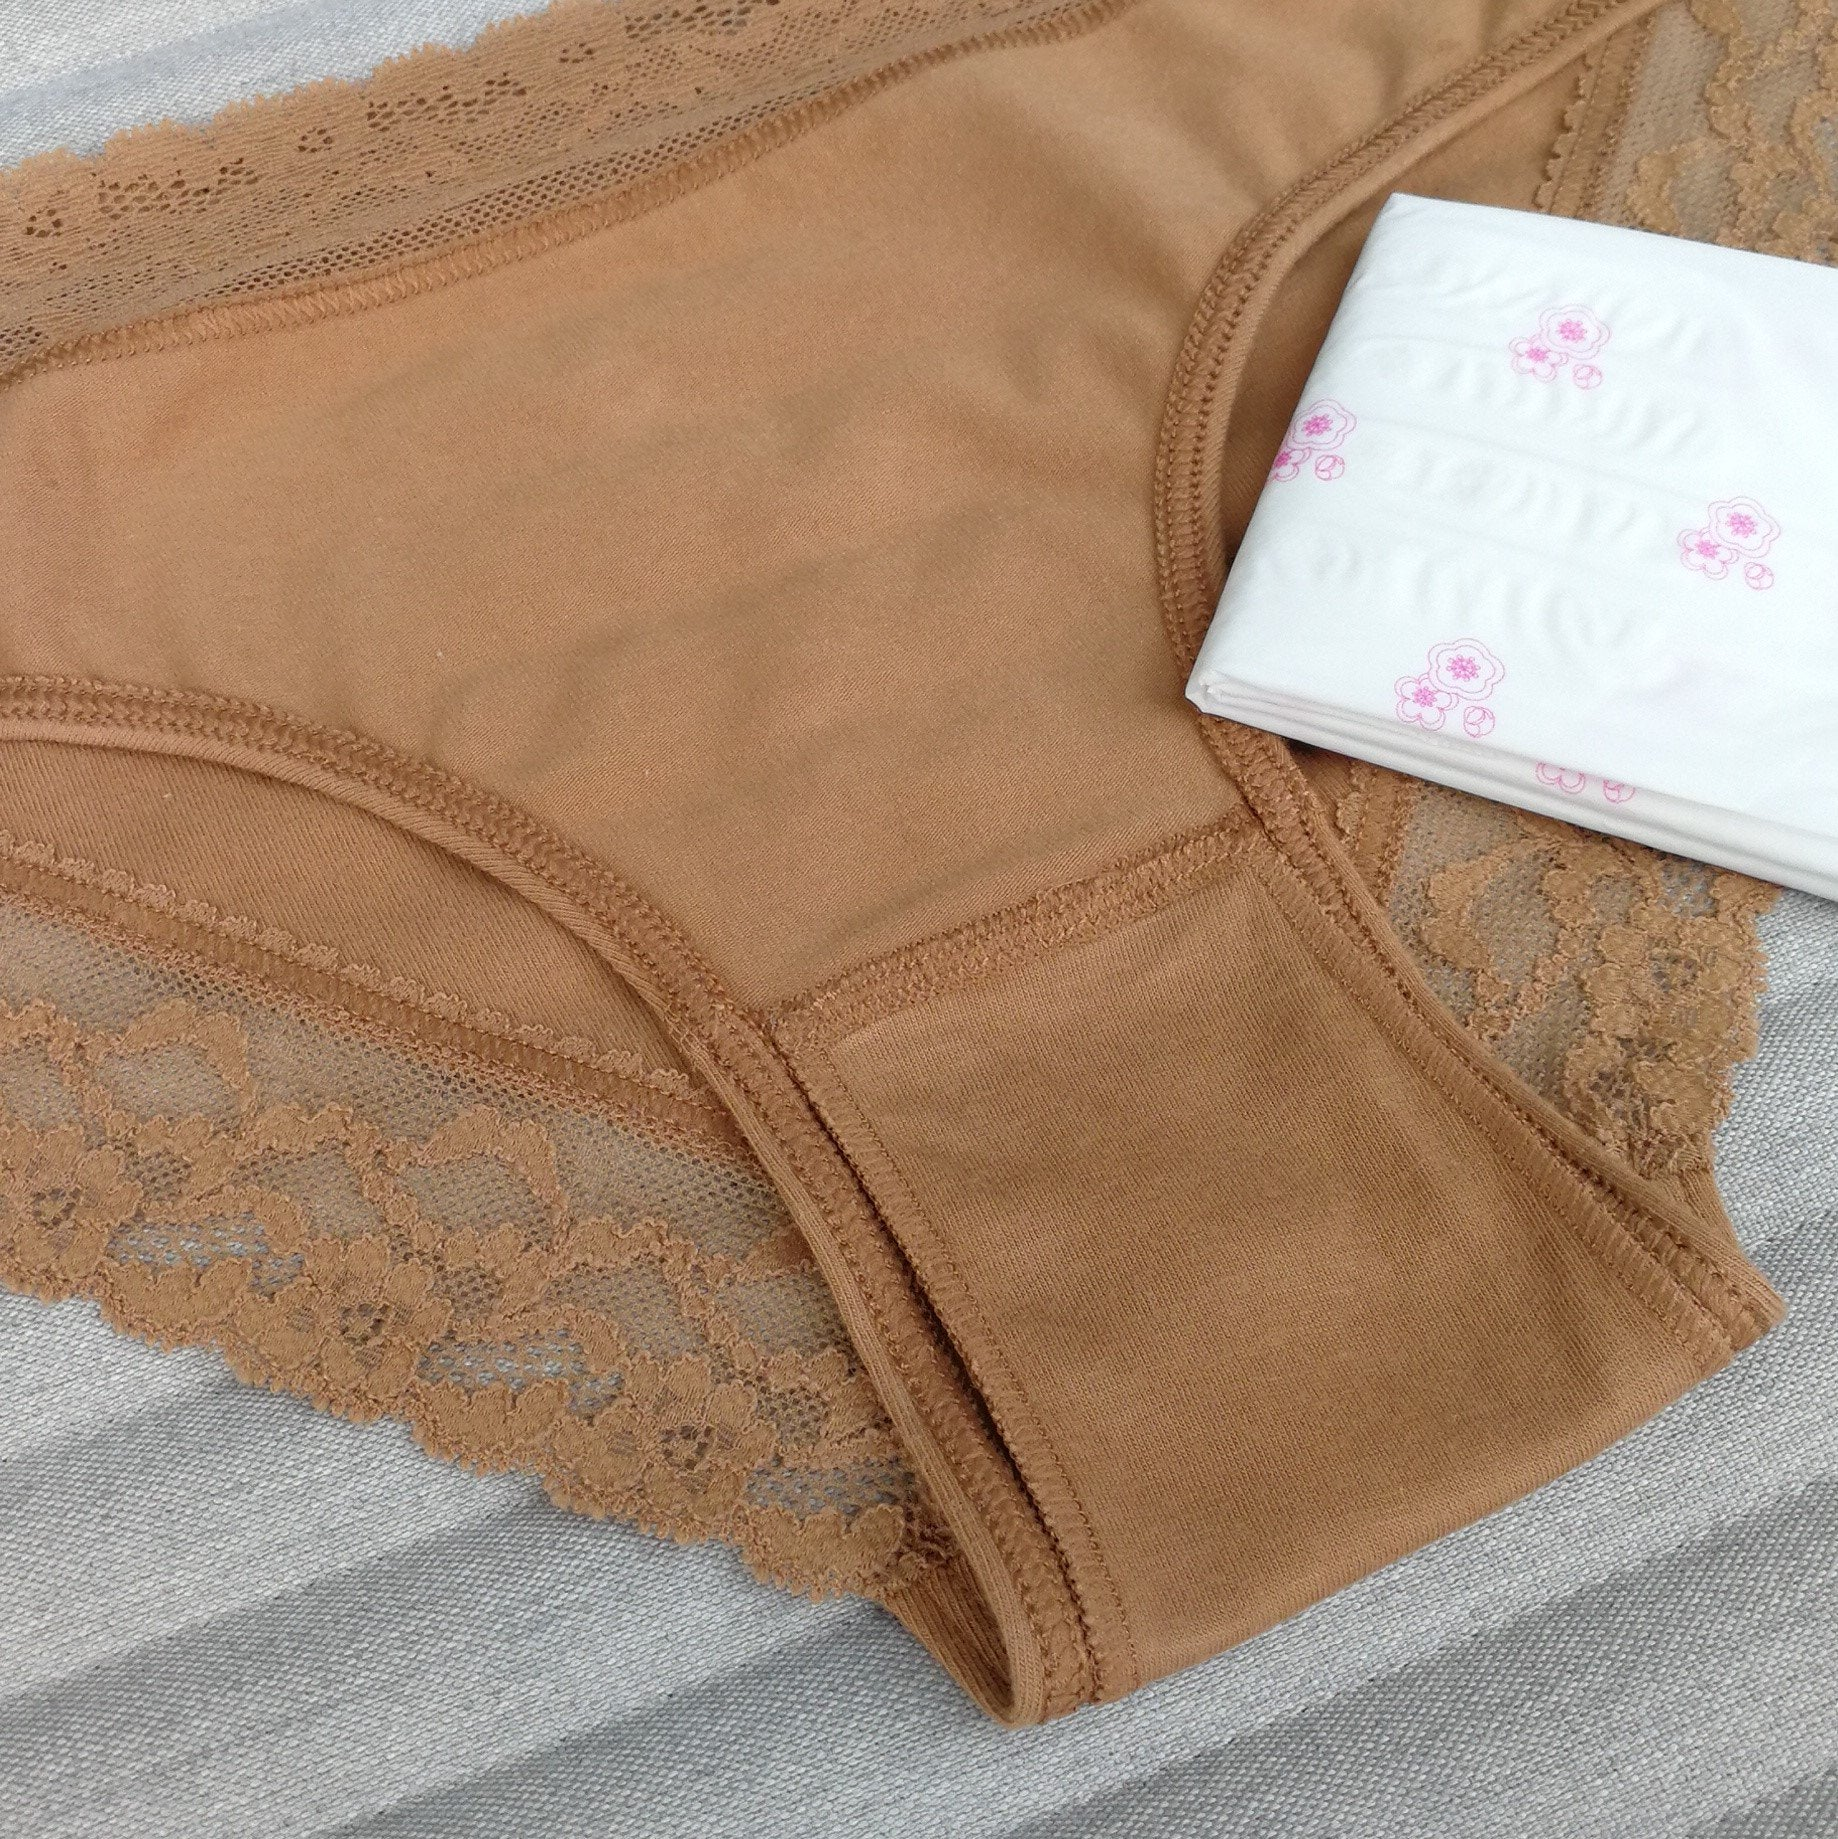 EiVi patented double gusset underwear period panties